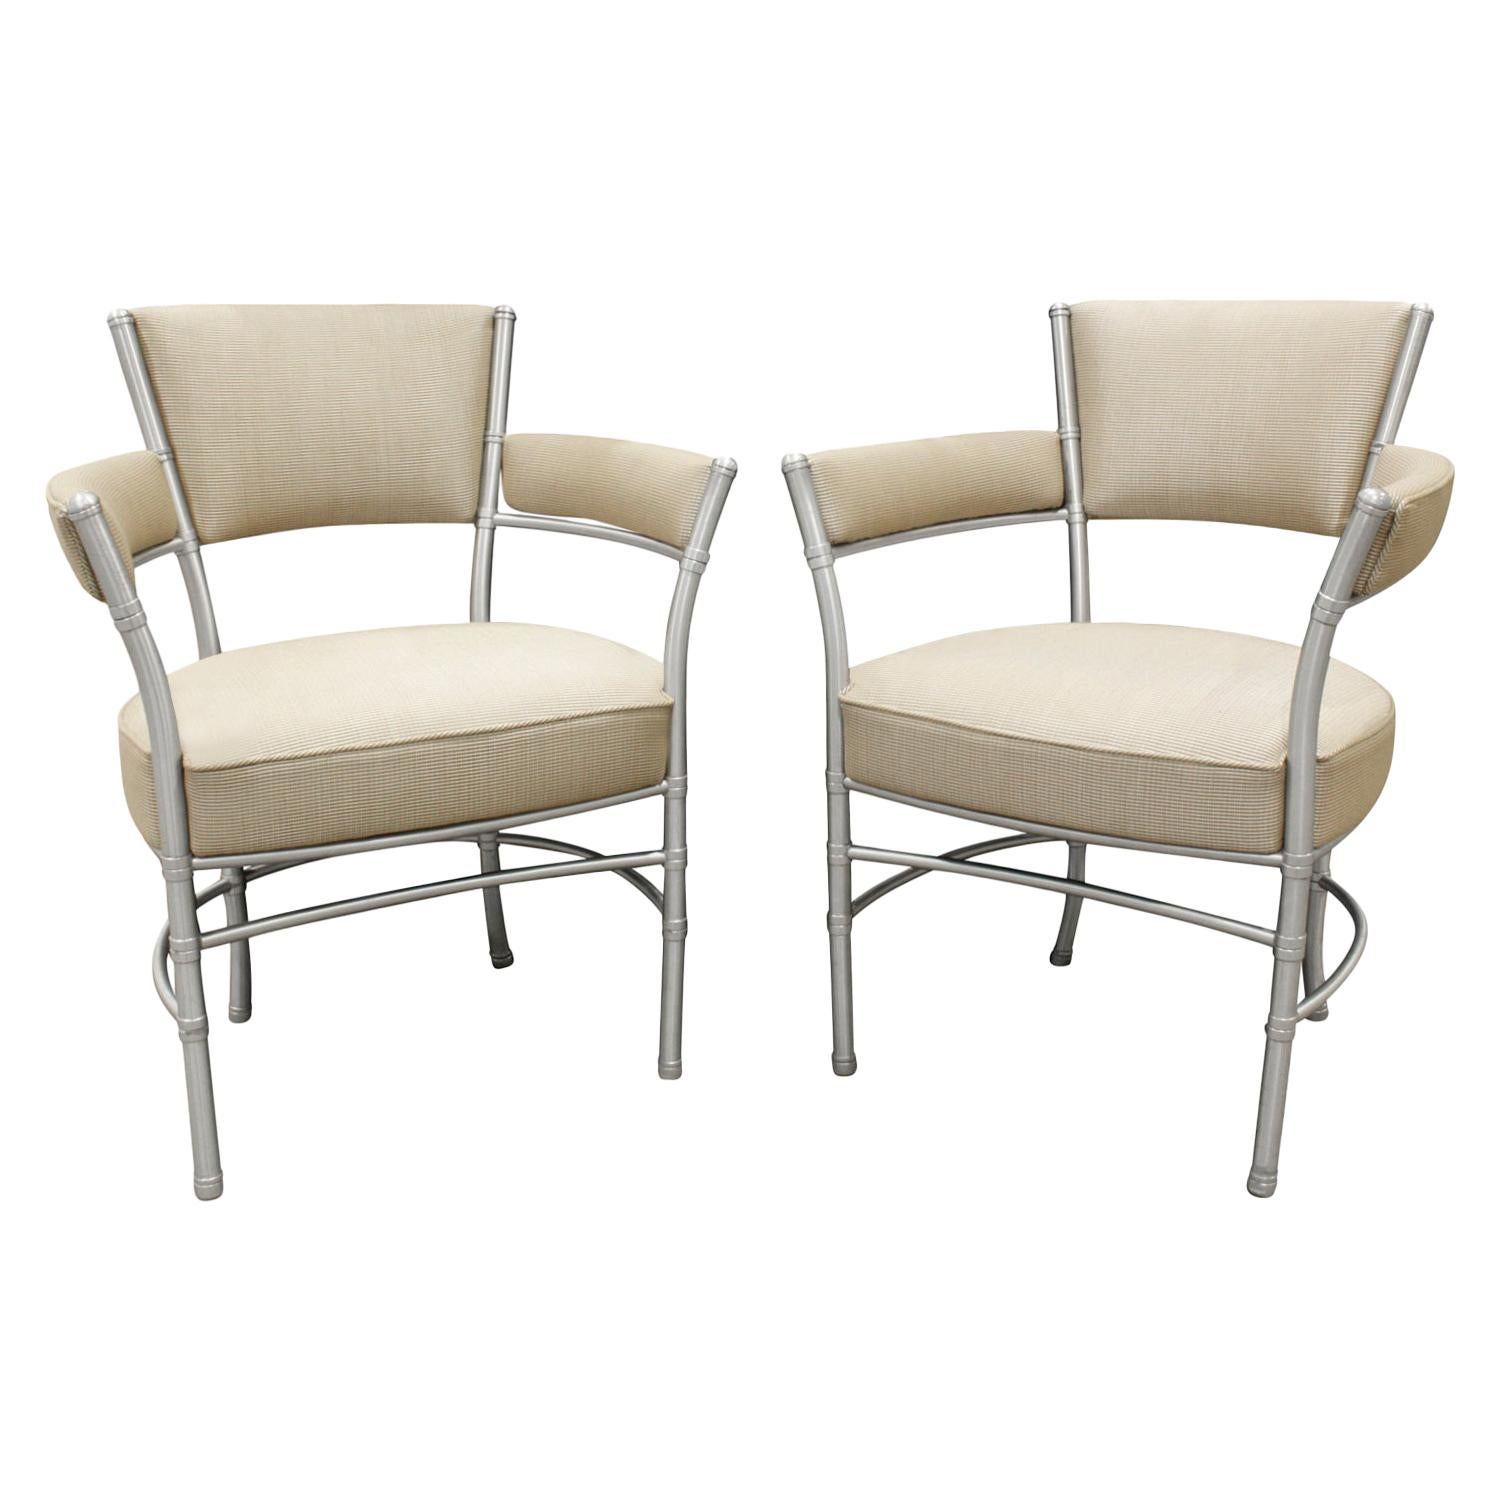 Warren McArthur Pair of Lounge Chairs in Tubular Aluminum, 1930s 'Signed'